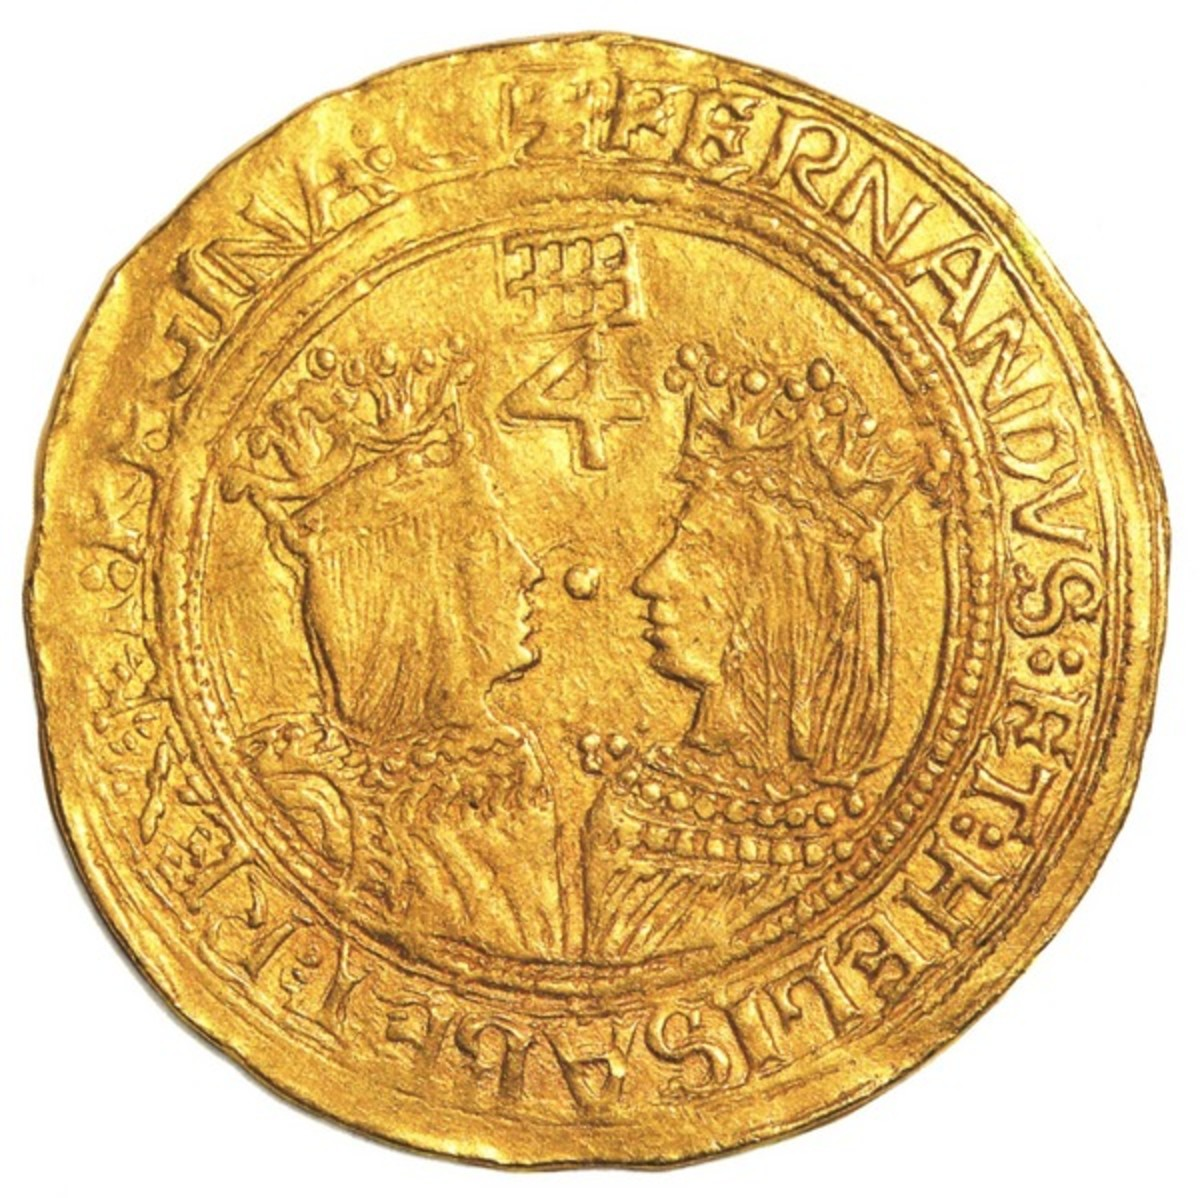 The marriage of Ferdinand II of Aragon and Isabella I of Castile in 1469 united much of the Iberian Peninsula under one kingdom and laid the foundation for one of Europe's first nation-states--Spain.